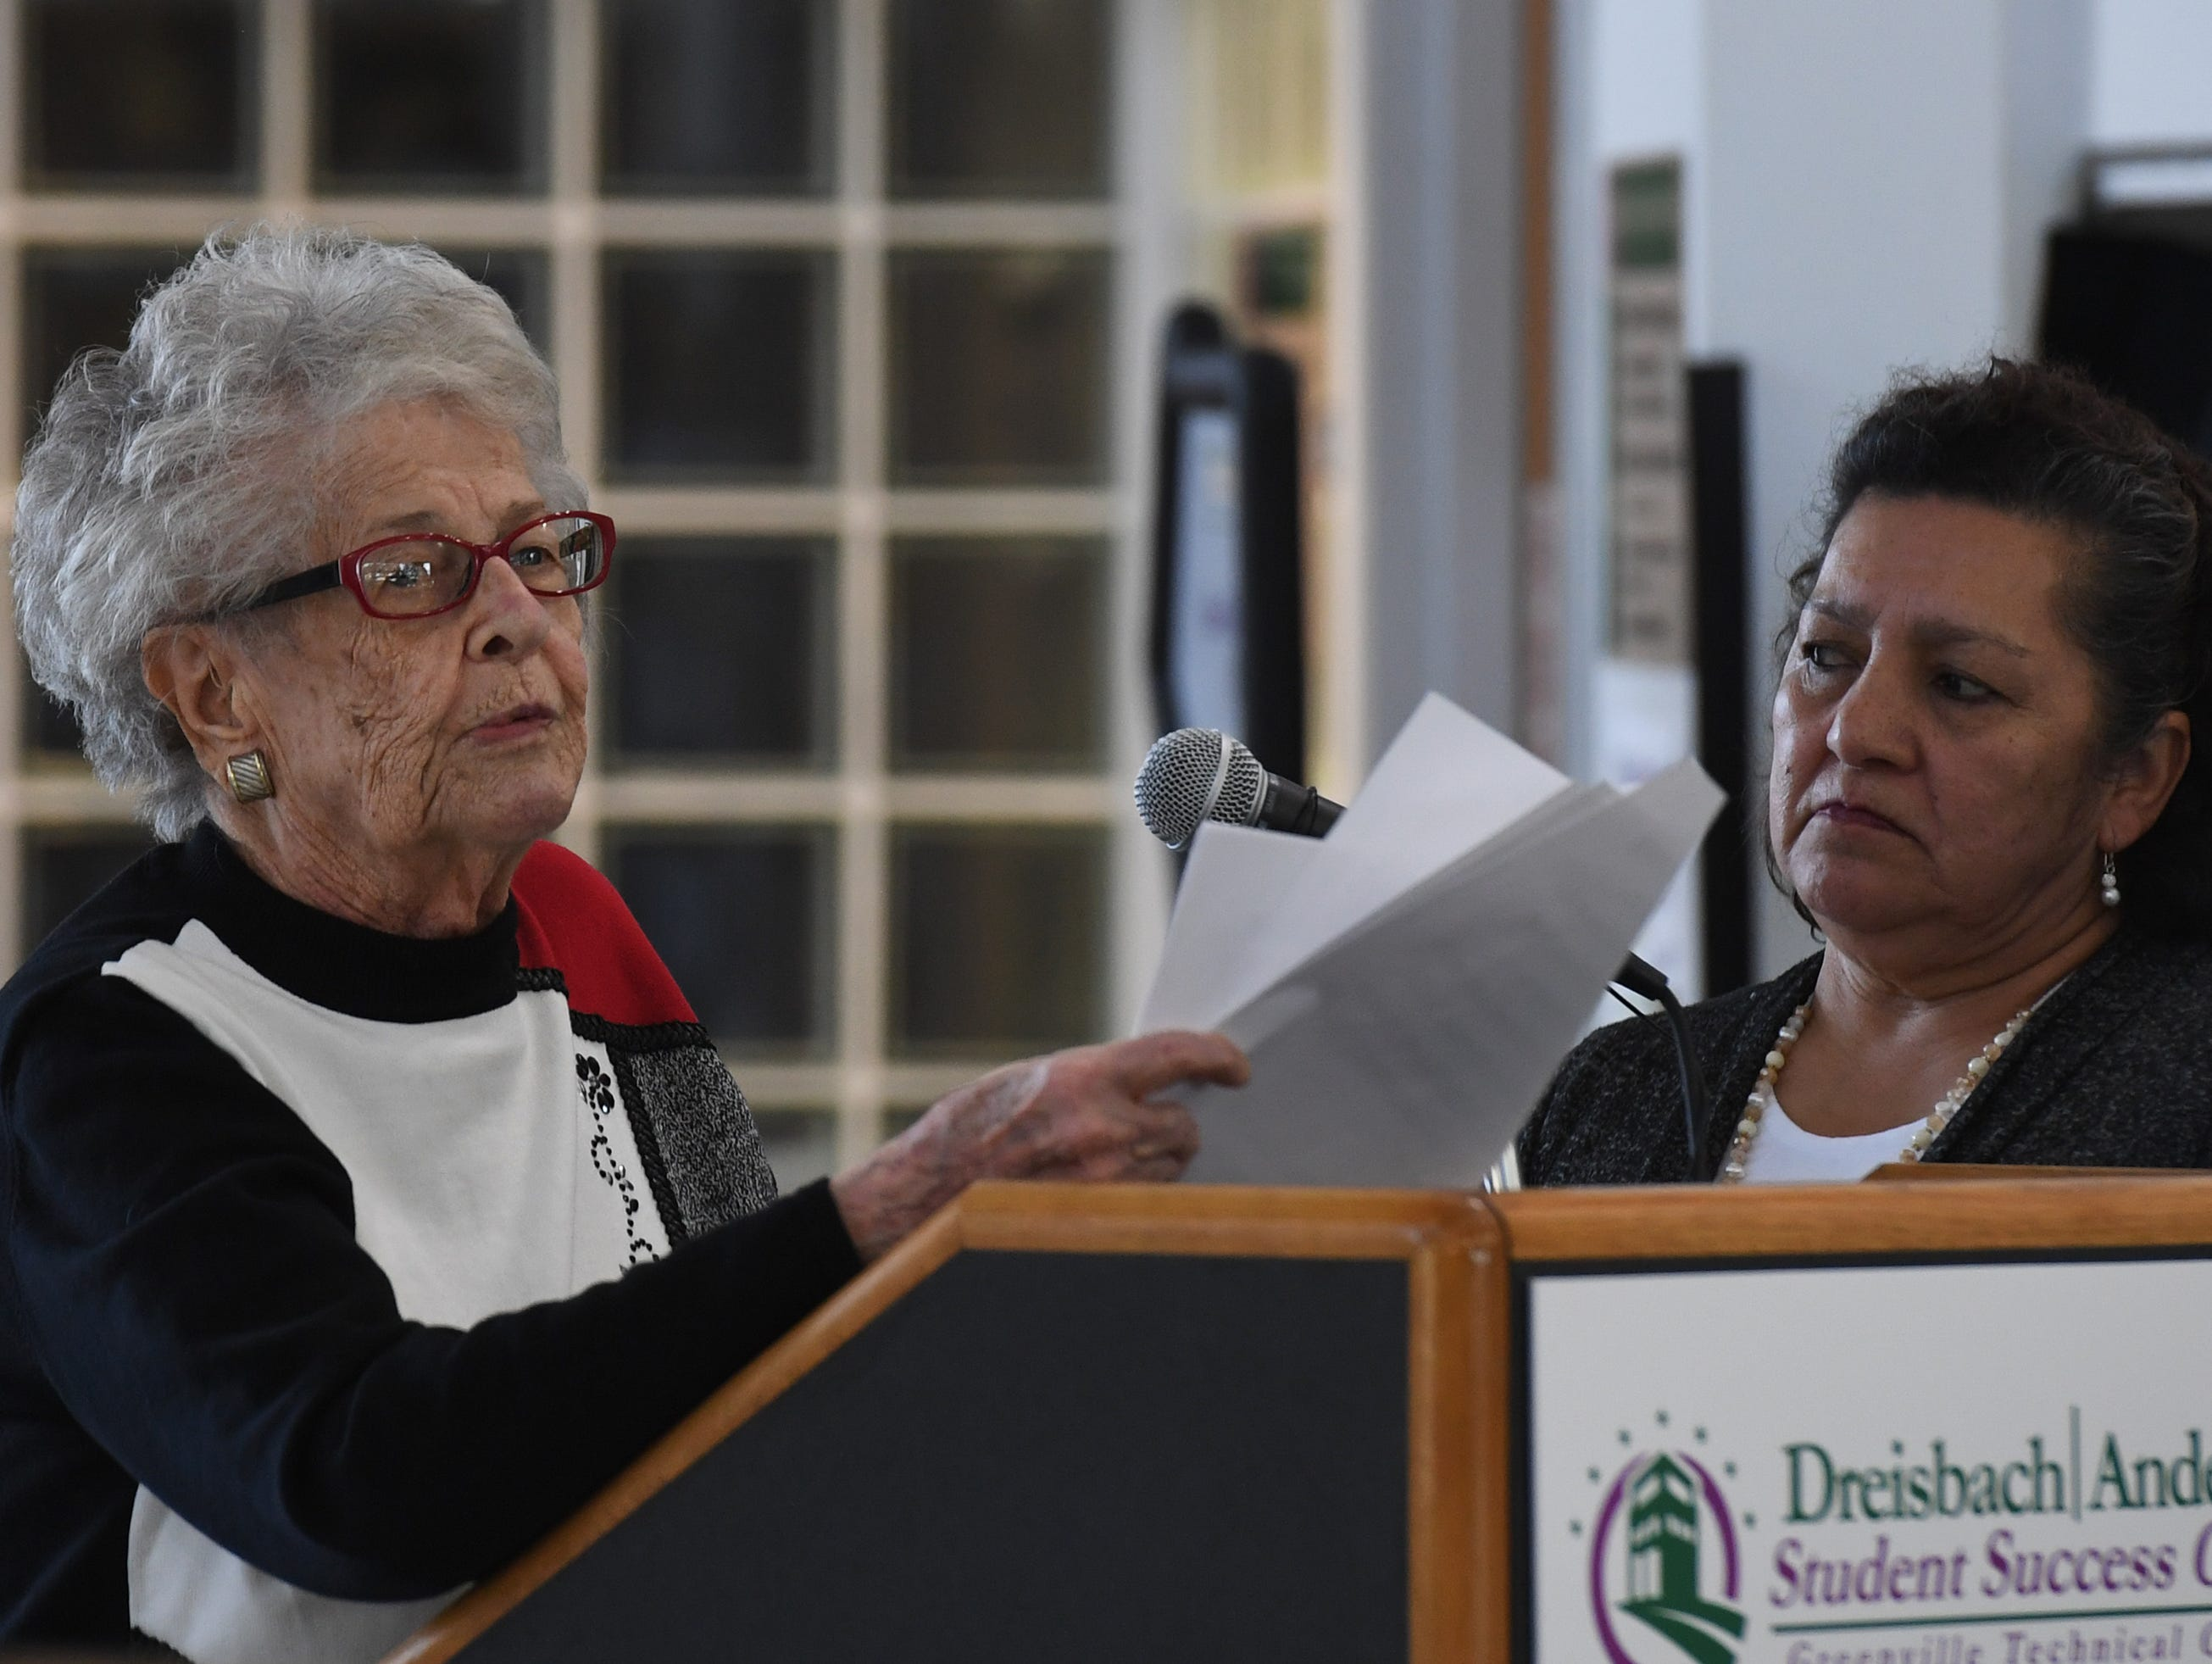 Dodie Anderson makes a speech at Greenville Technical College Wednesday, Nov. 28, 2018 after she donated $2 million to the Greenville Tech Foundation.